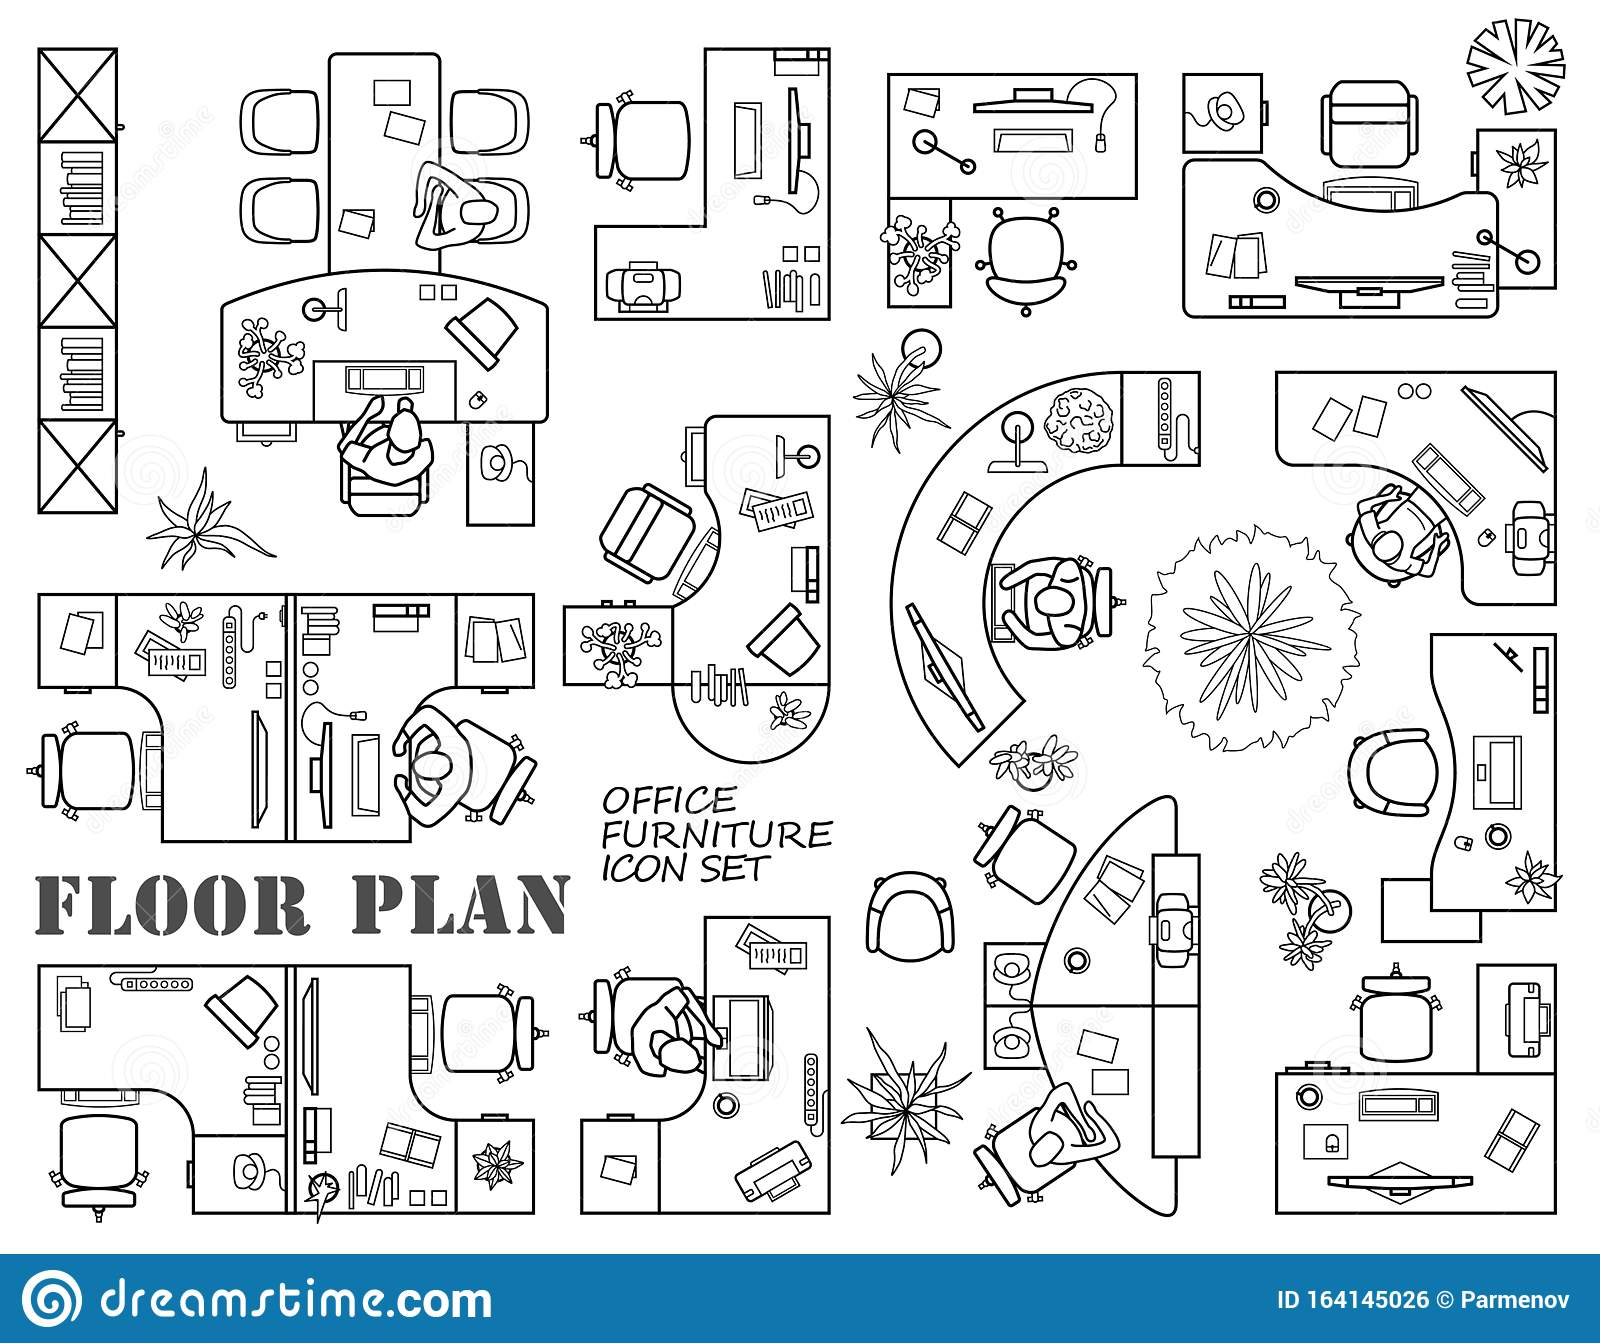 Floor Plan Of Office Or Cabinet In Top View Modular System Of Office Equipment Furniture Icons In View From Above Vector Stock Vector Illustration Of Layout Modular 164145026